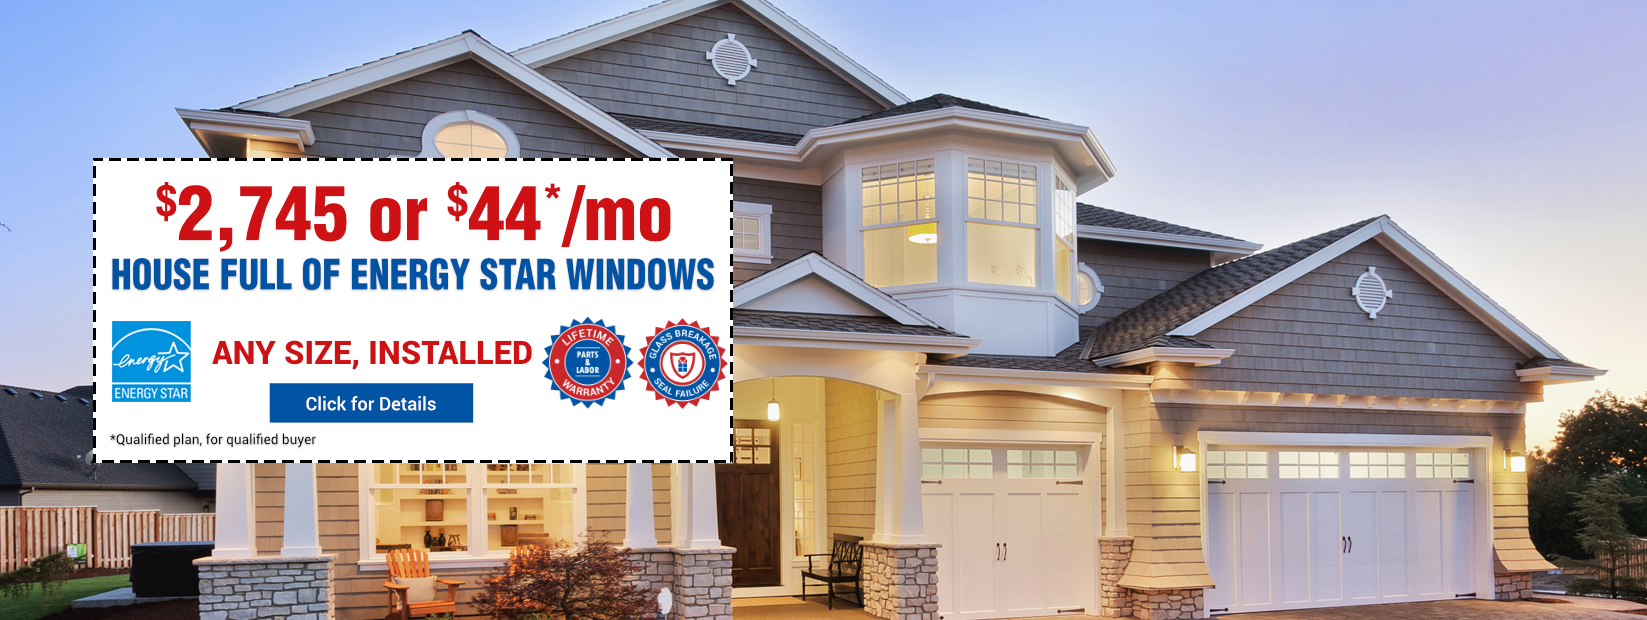 Energy Star Windows at $2754